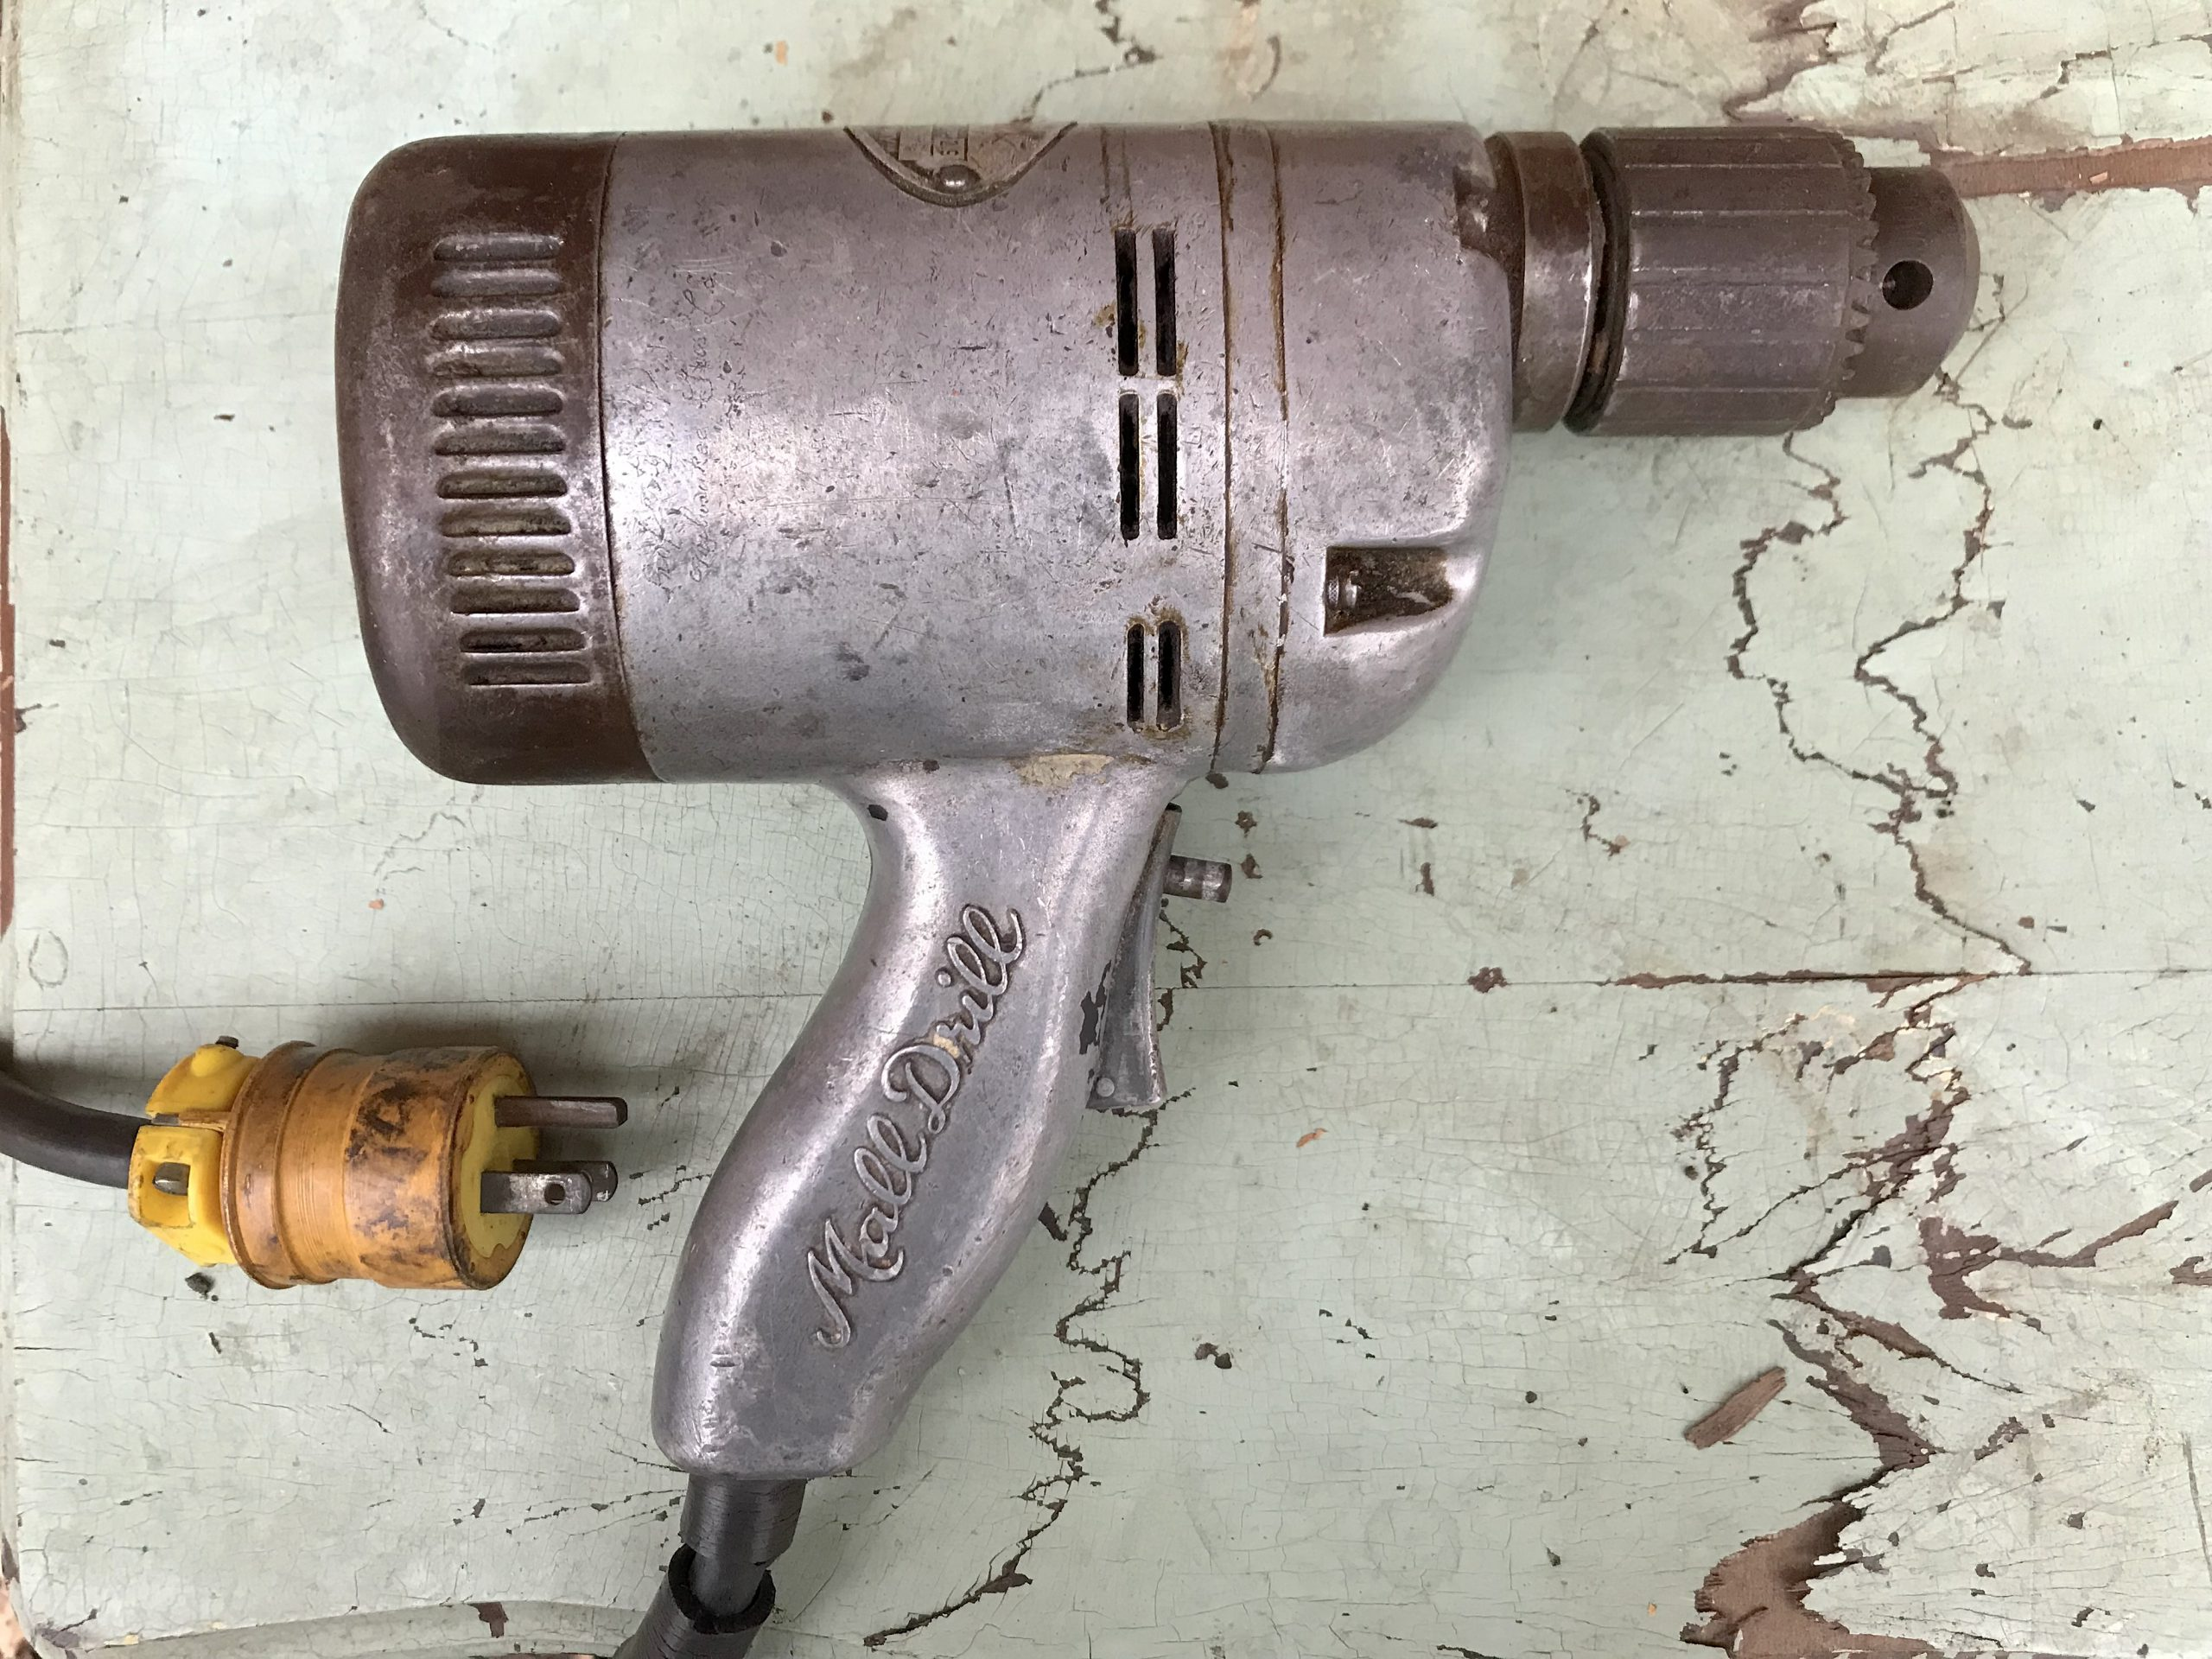 Mall Tool Electric Drill History